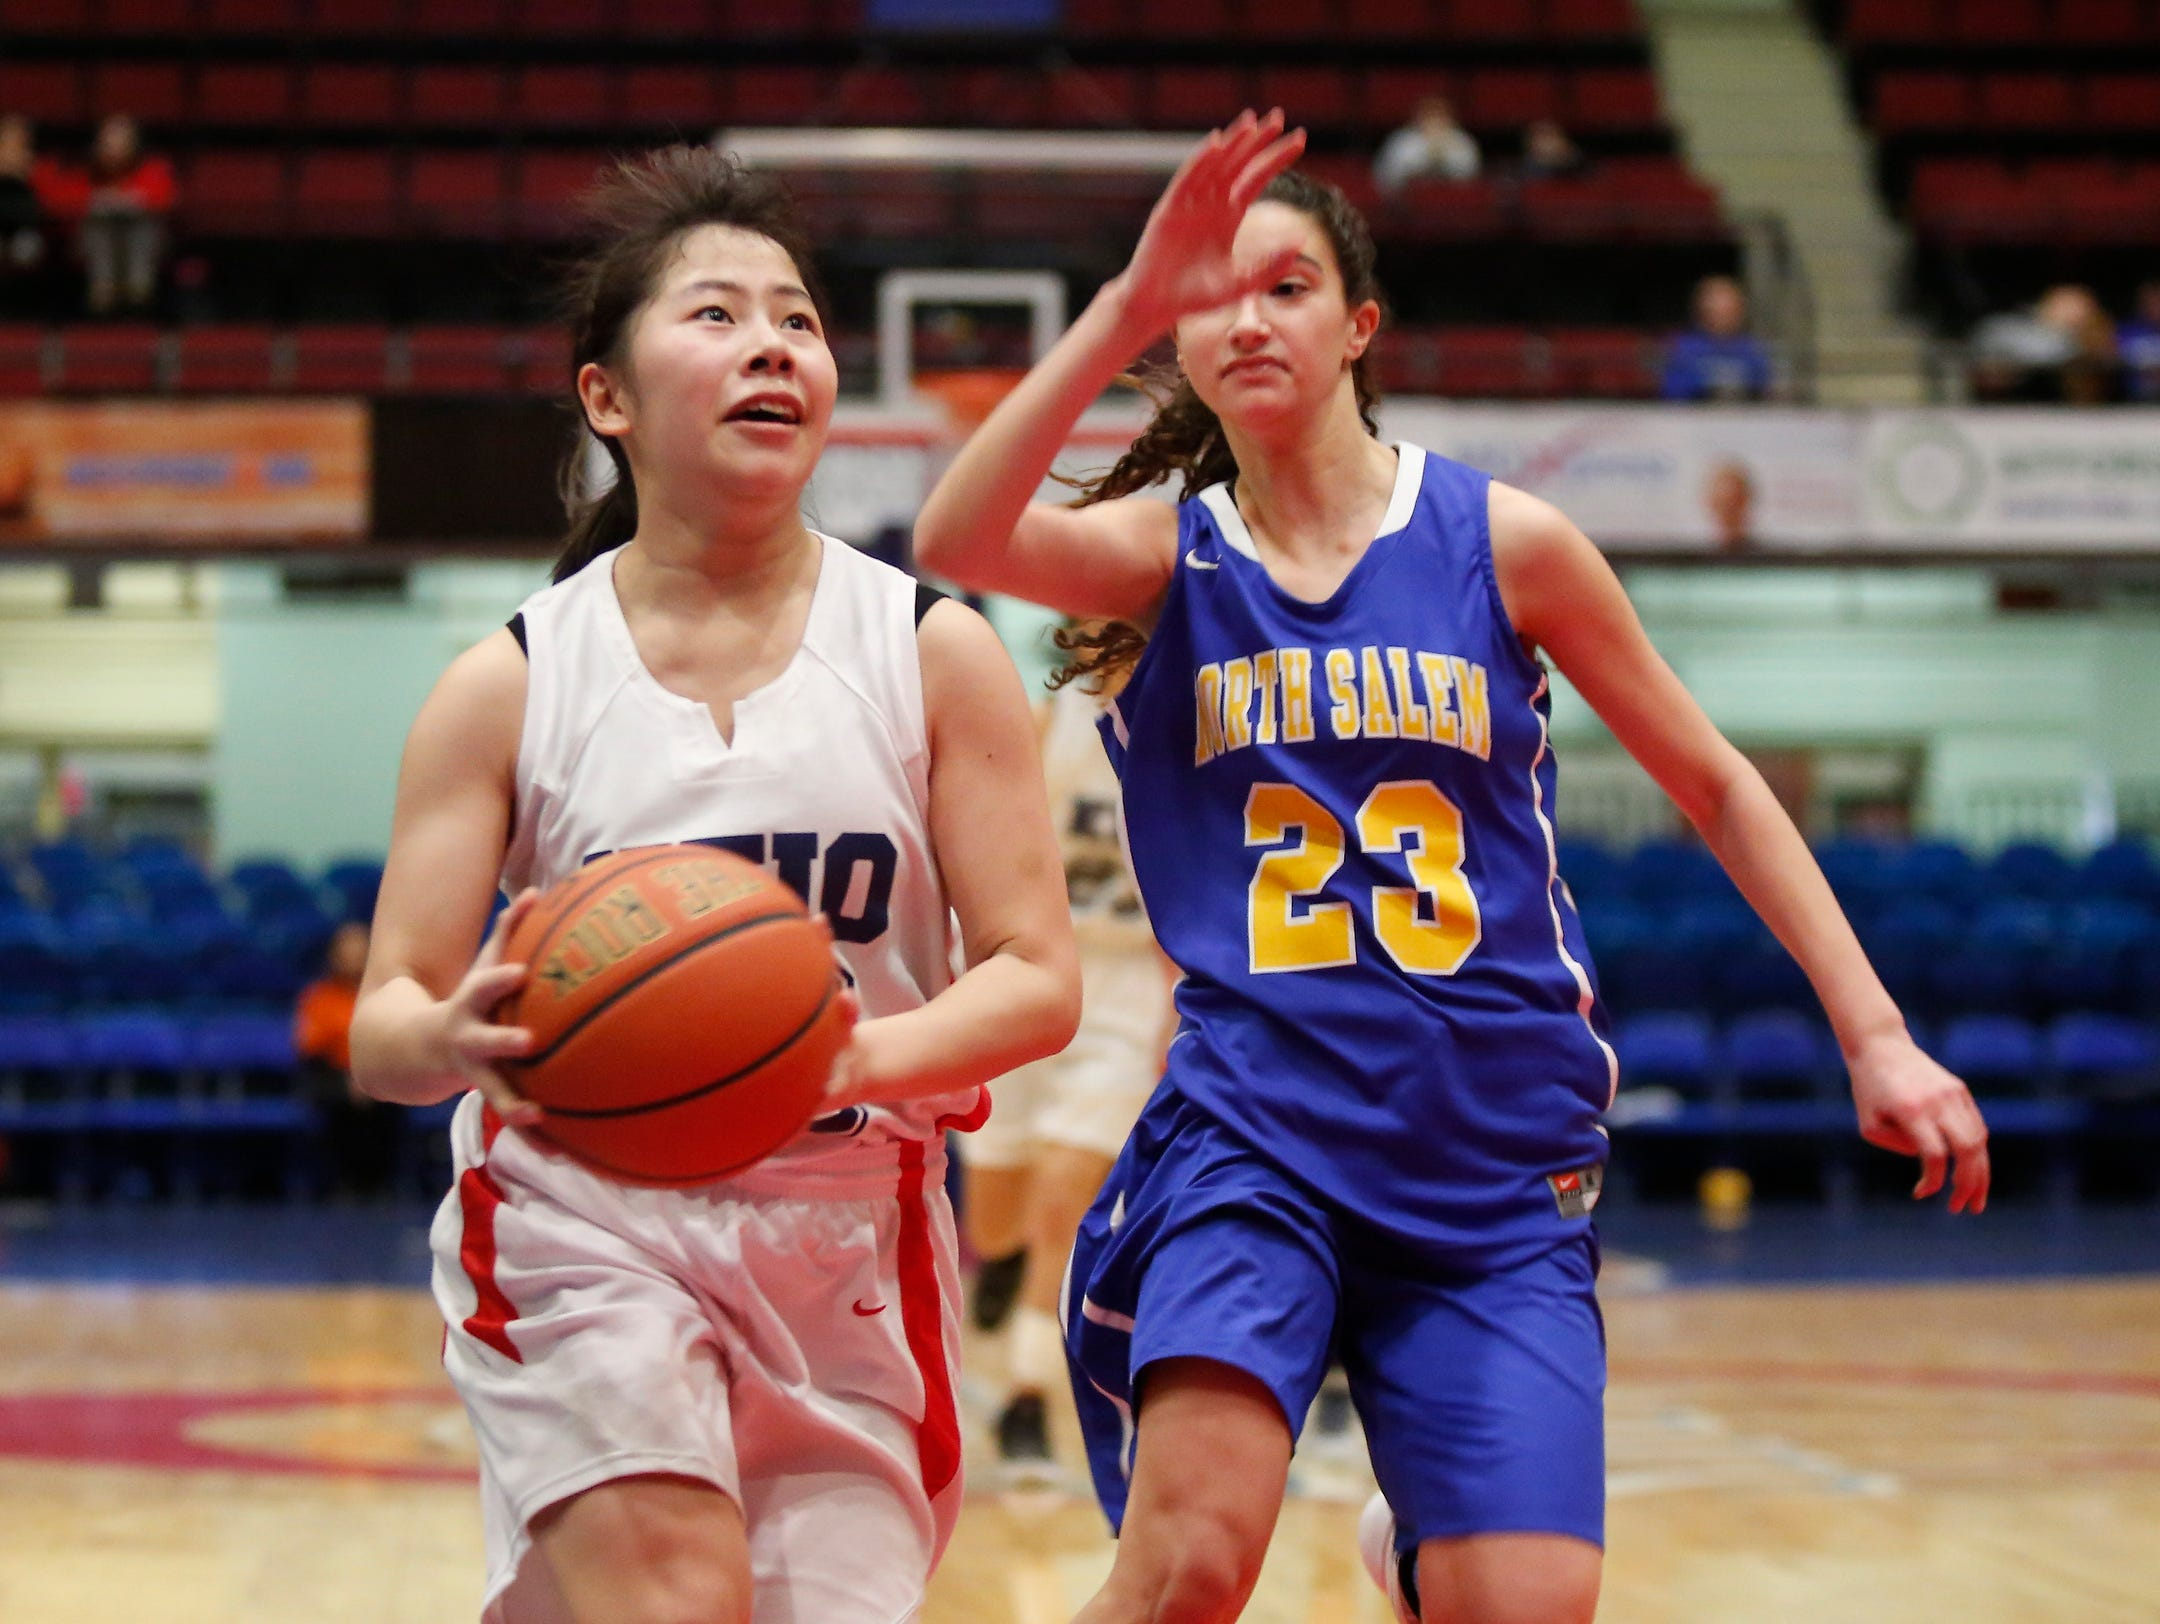 Keio's Ayano Miyauchi (10) dribbles past North Salem's Julia Desanto (23) in the class C semi-final basketball game at the Westchester County Center in White Plains on Saturday, February 27, 2016.